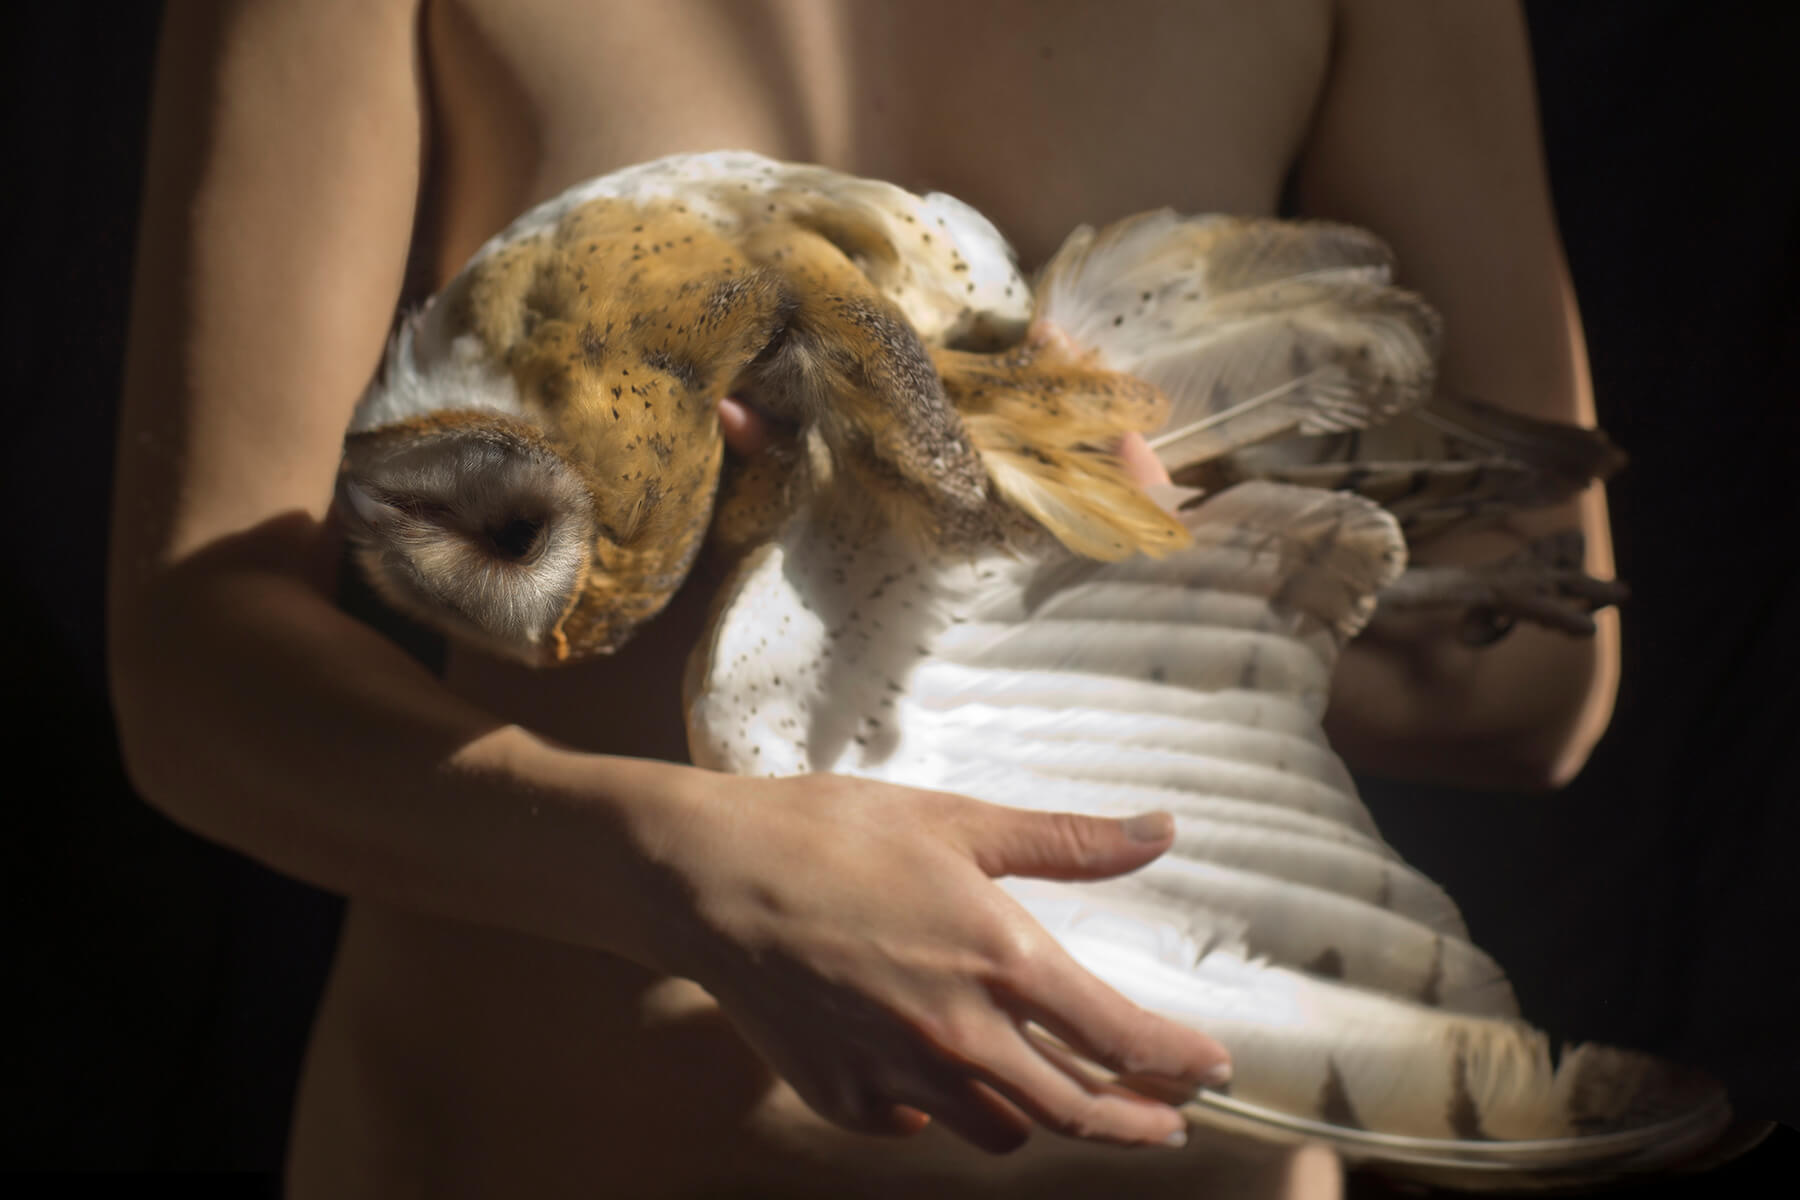 A photograph, dramatically lit, in which a white woman's naked torso is seen cradling in her arms the body of a light brown and white owl, with its white-feathered wing extended downward.